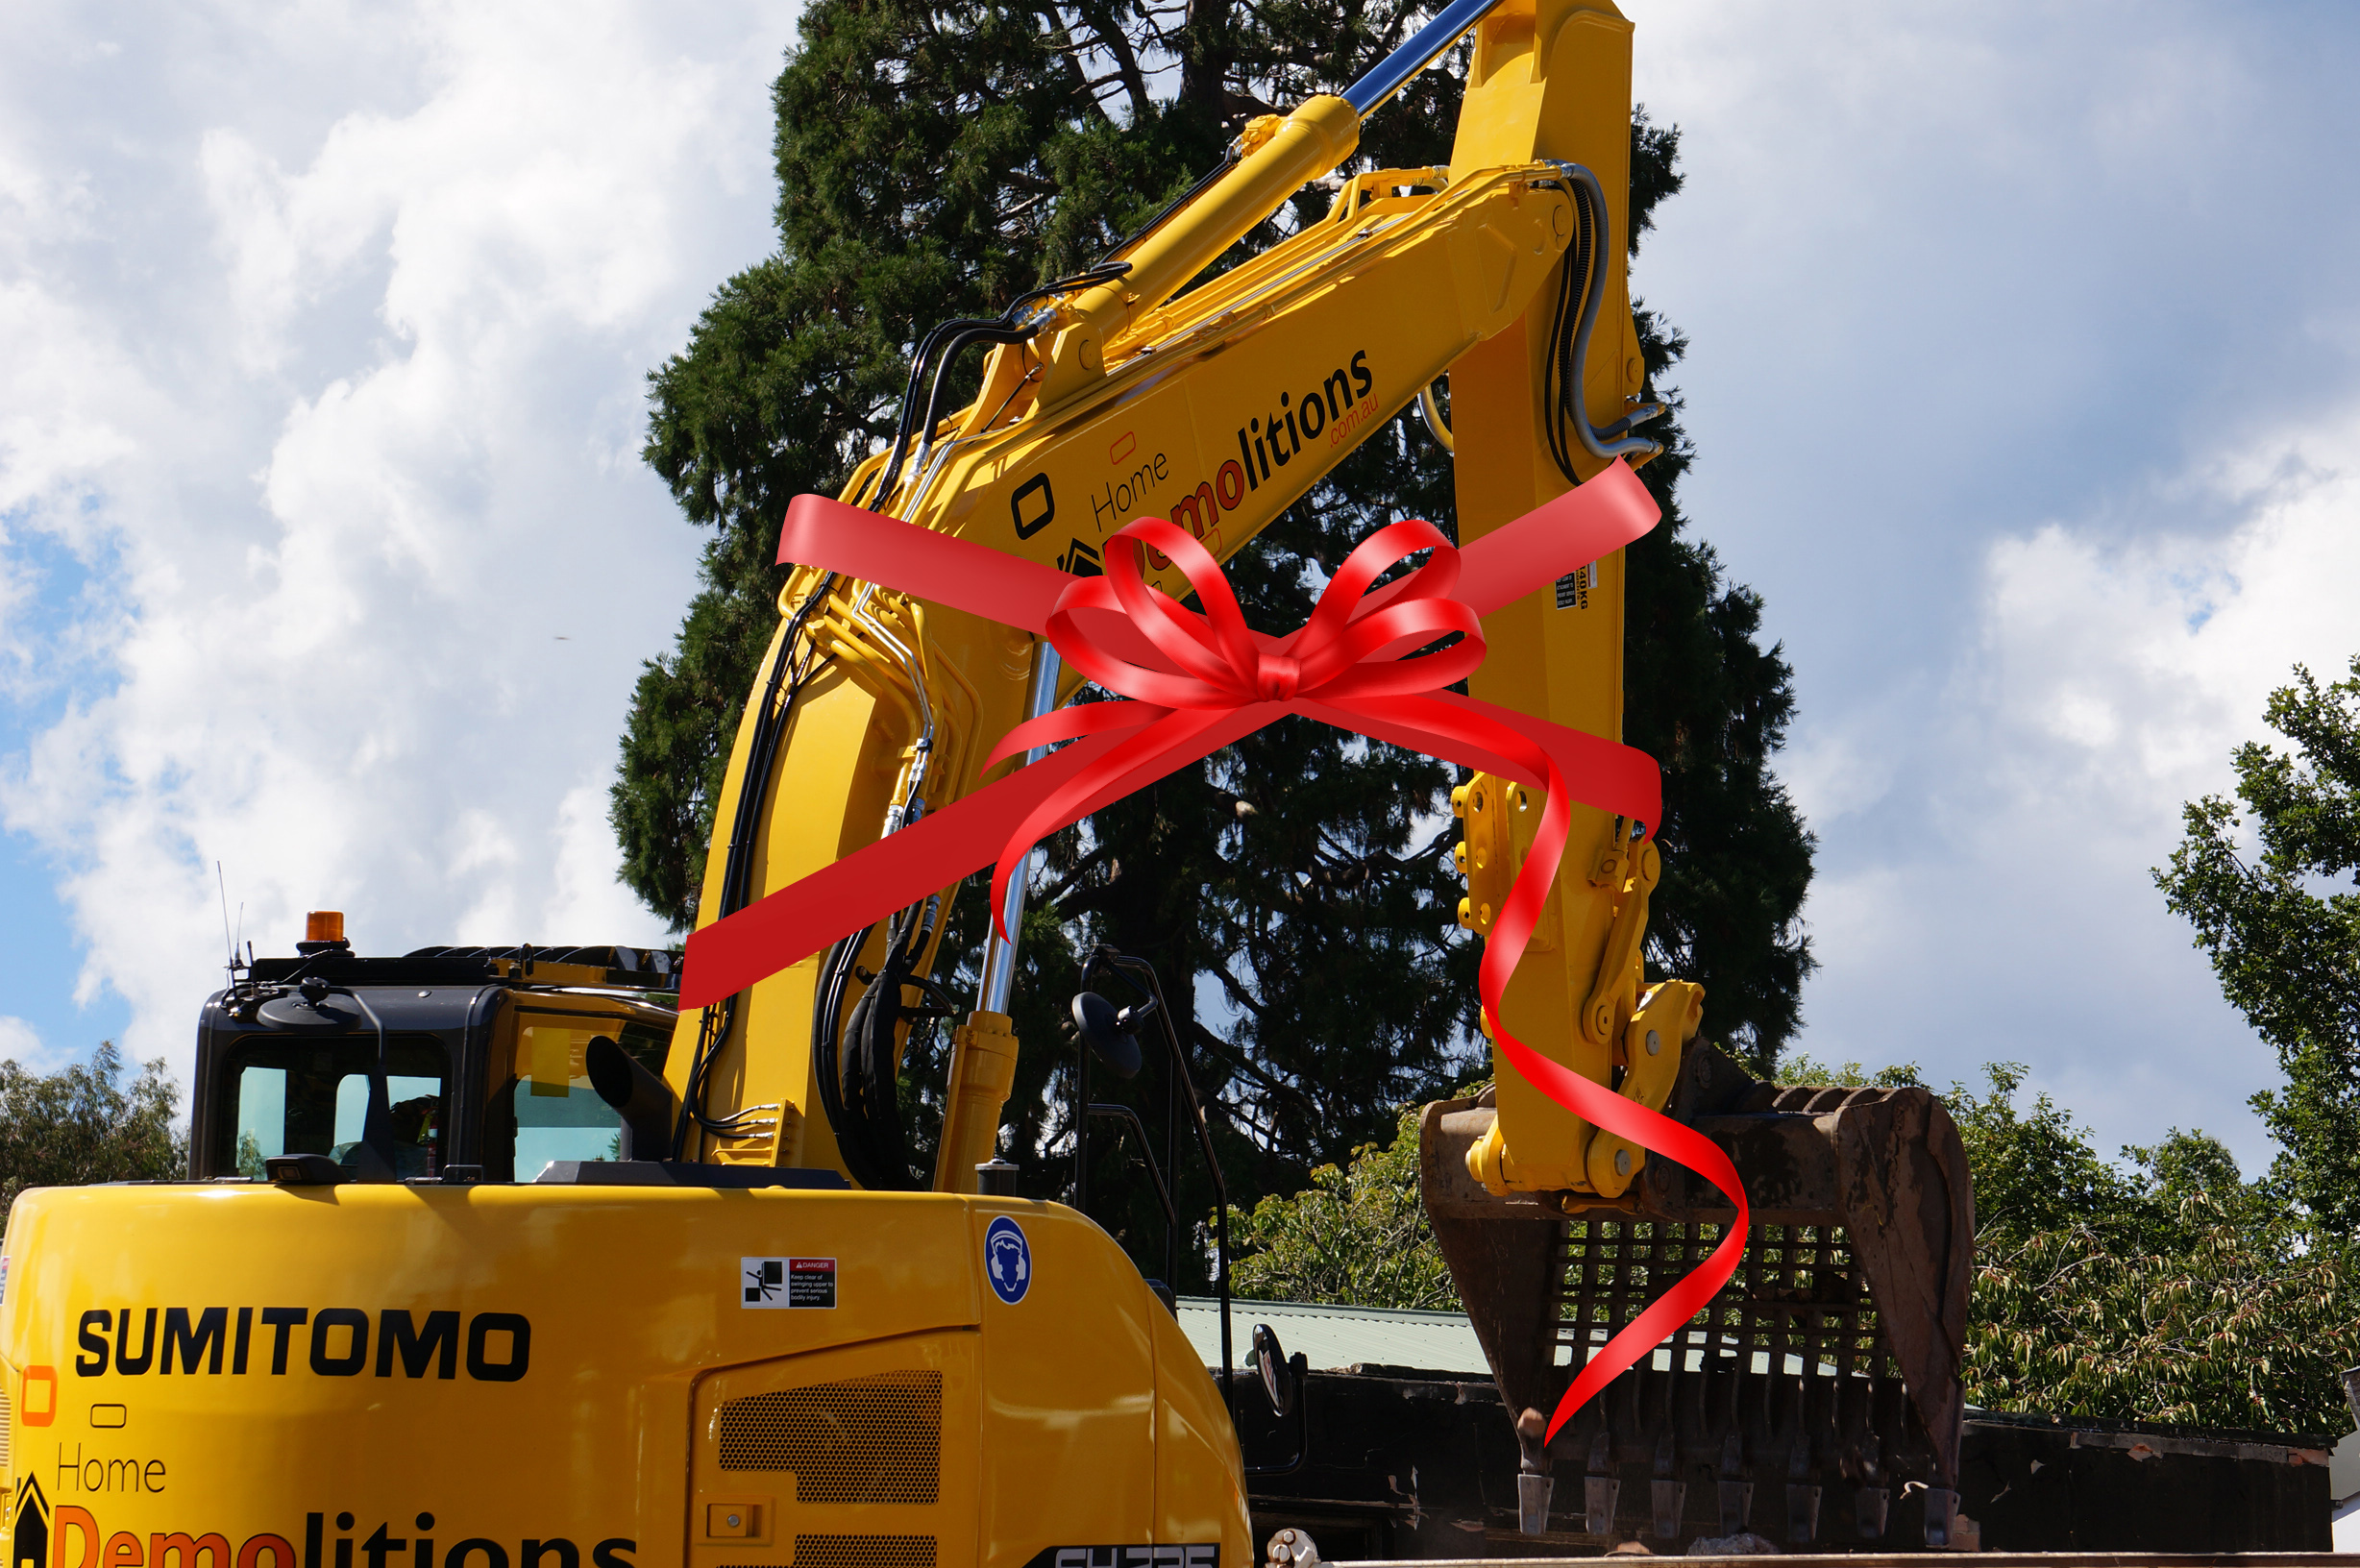 Our Sumitomo excavator is fresh off the dealership and ready to work.